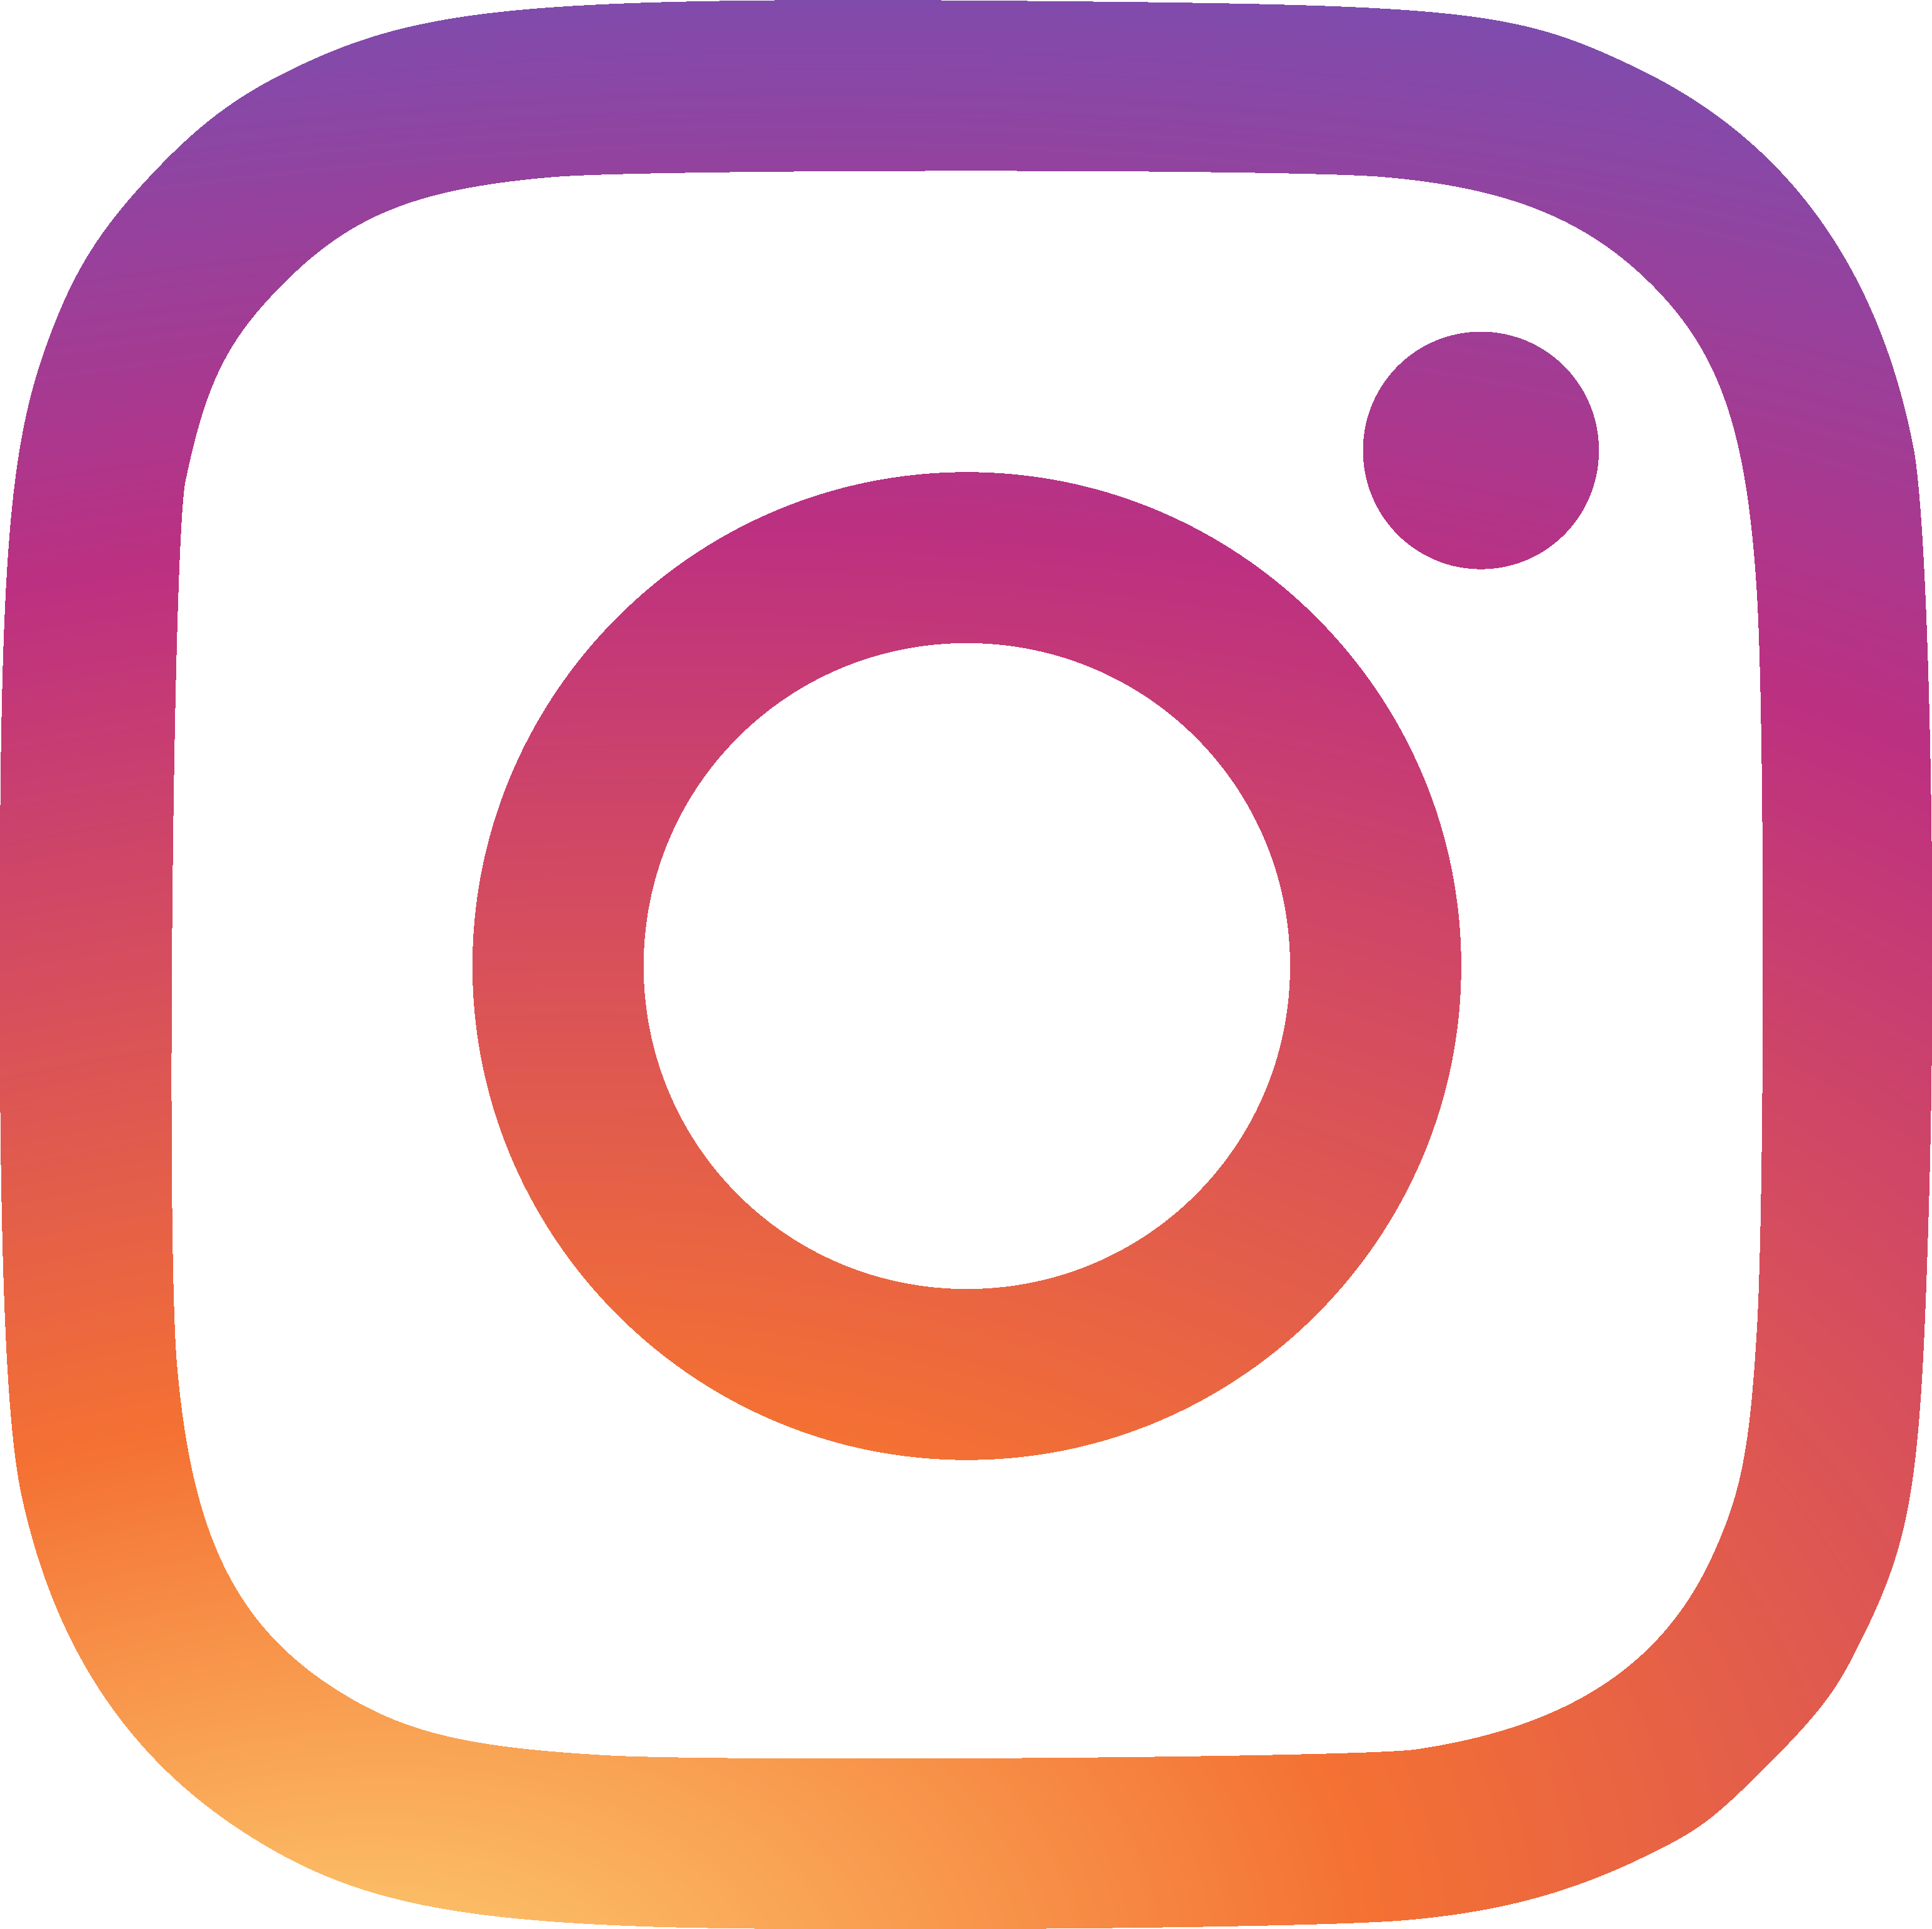 Download Computer Neon Instagram Icons Hd Image Free Png Hq Png Image Freepngimg